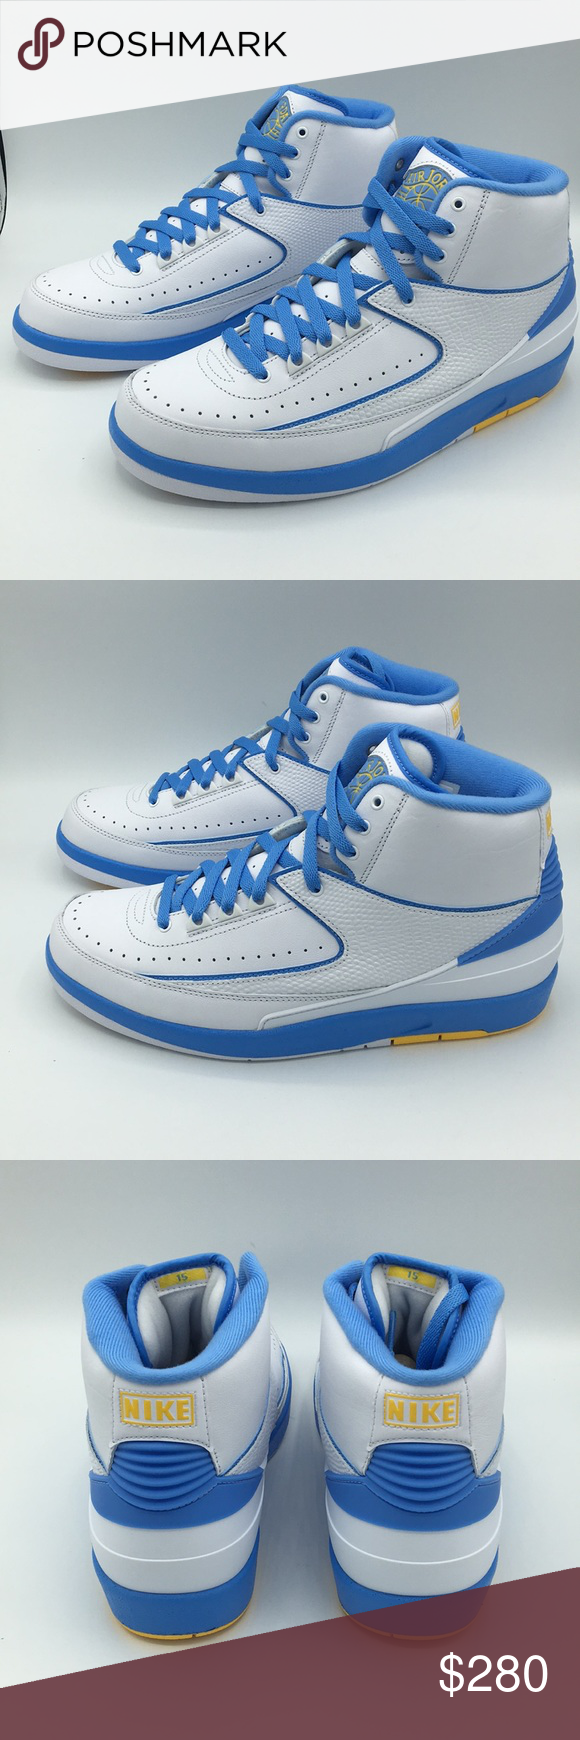 sports shoes 195e2 e07a3 Air Jordan Retro 2 Univ. Blue Carmelo Anthony Pair of Air ...